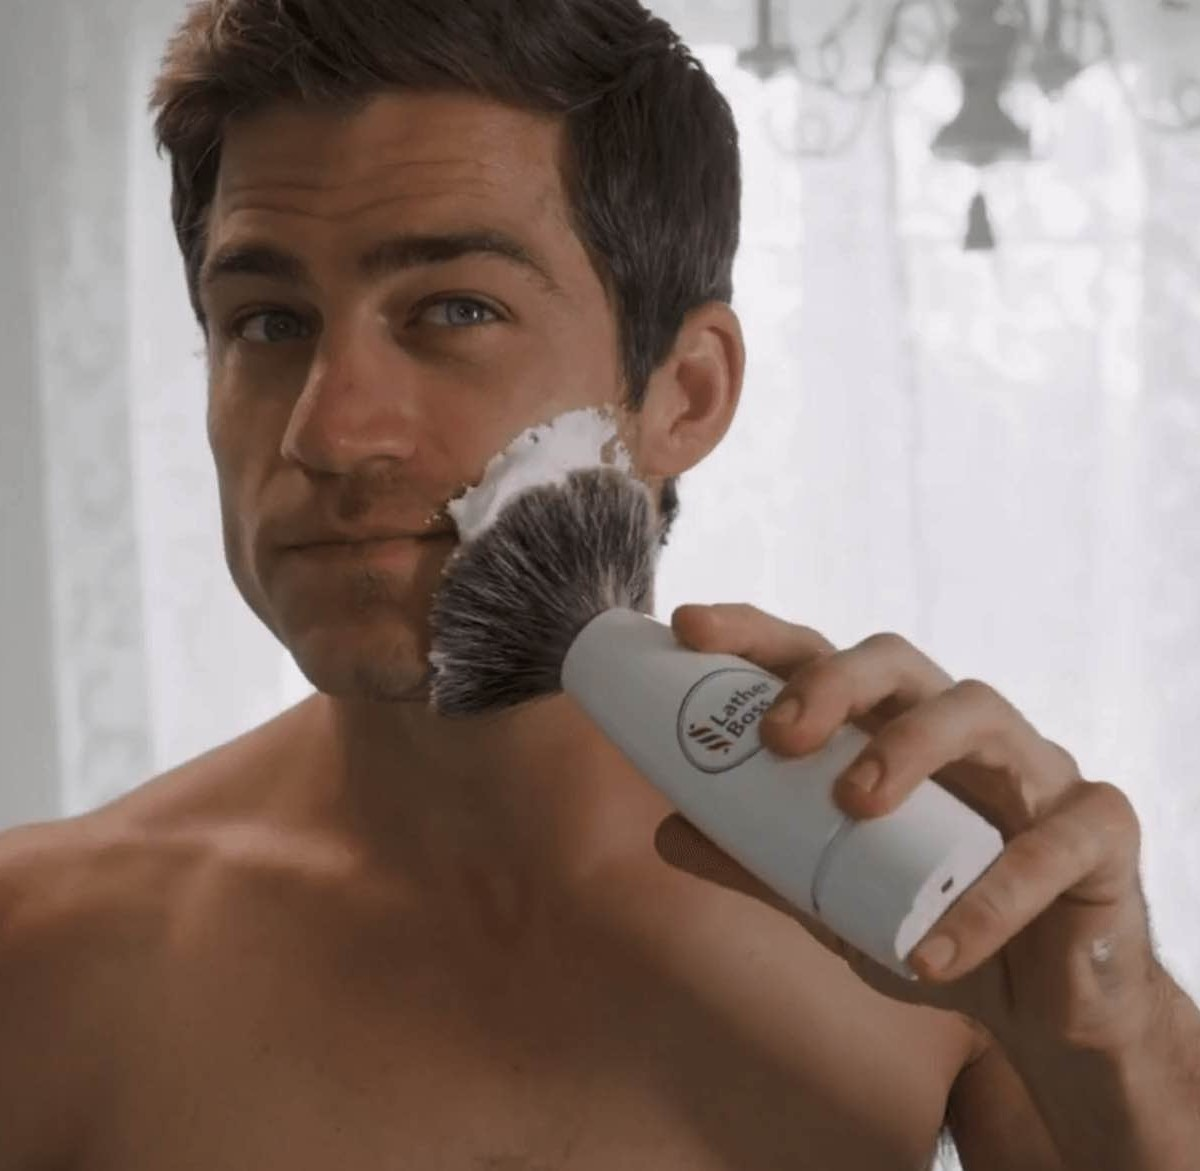 LatherBoss Self-Foaming Shave Brush gives a barbershop shave anywhere